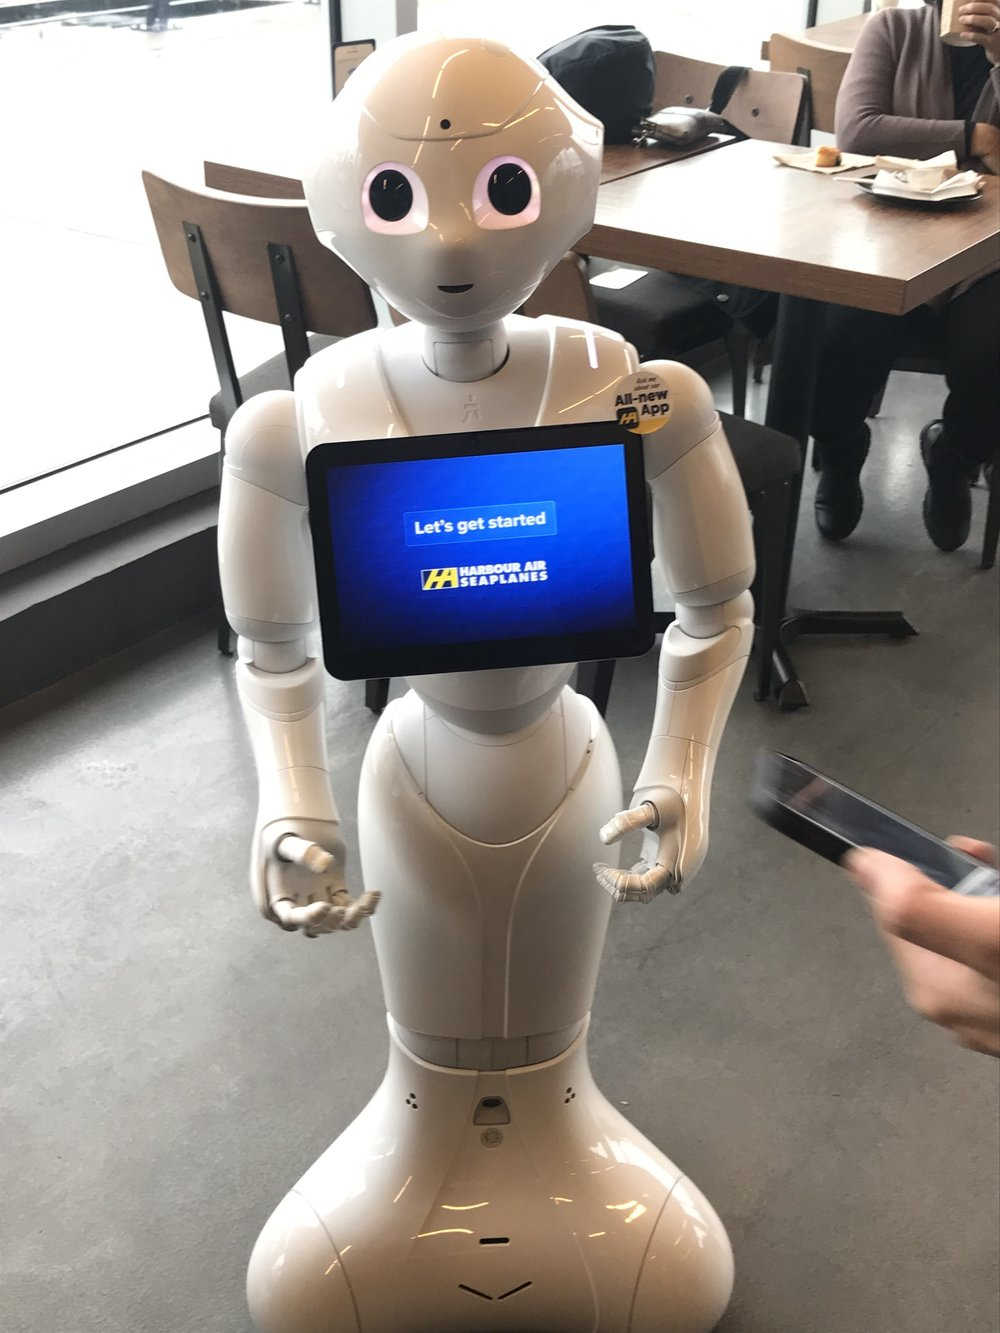 Harbour Air robot Pepper